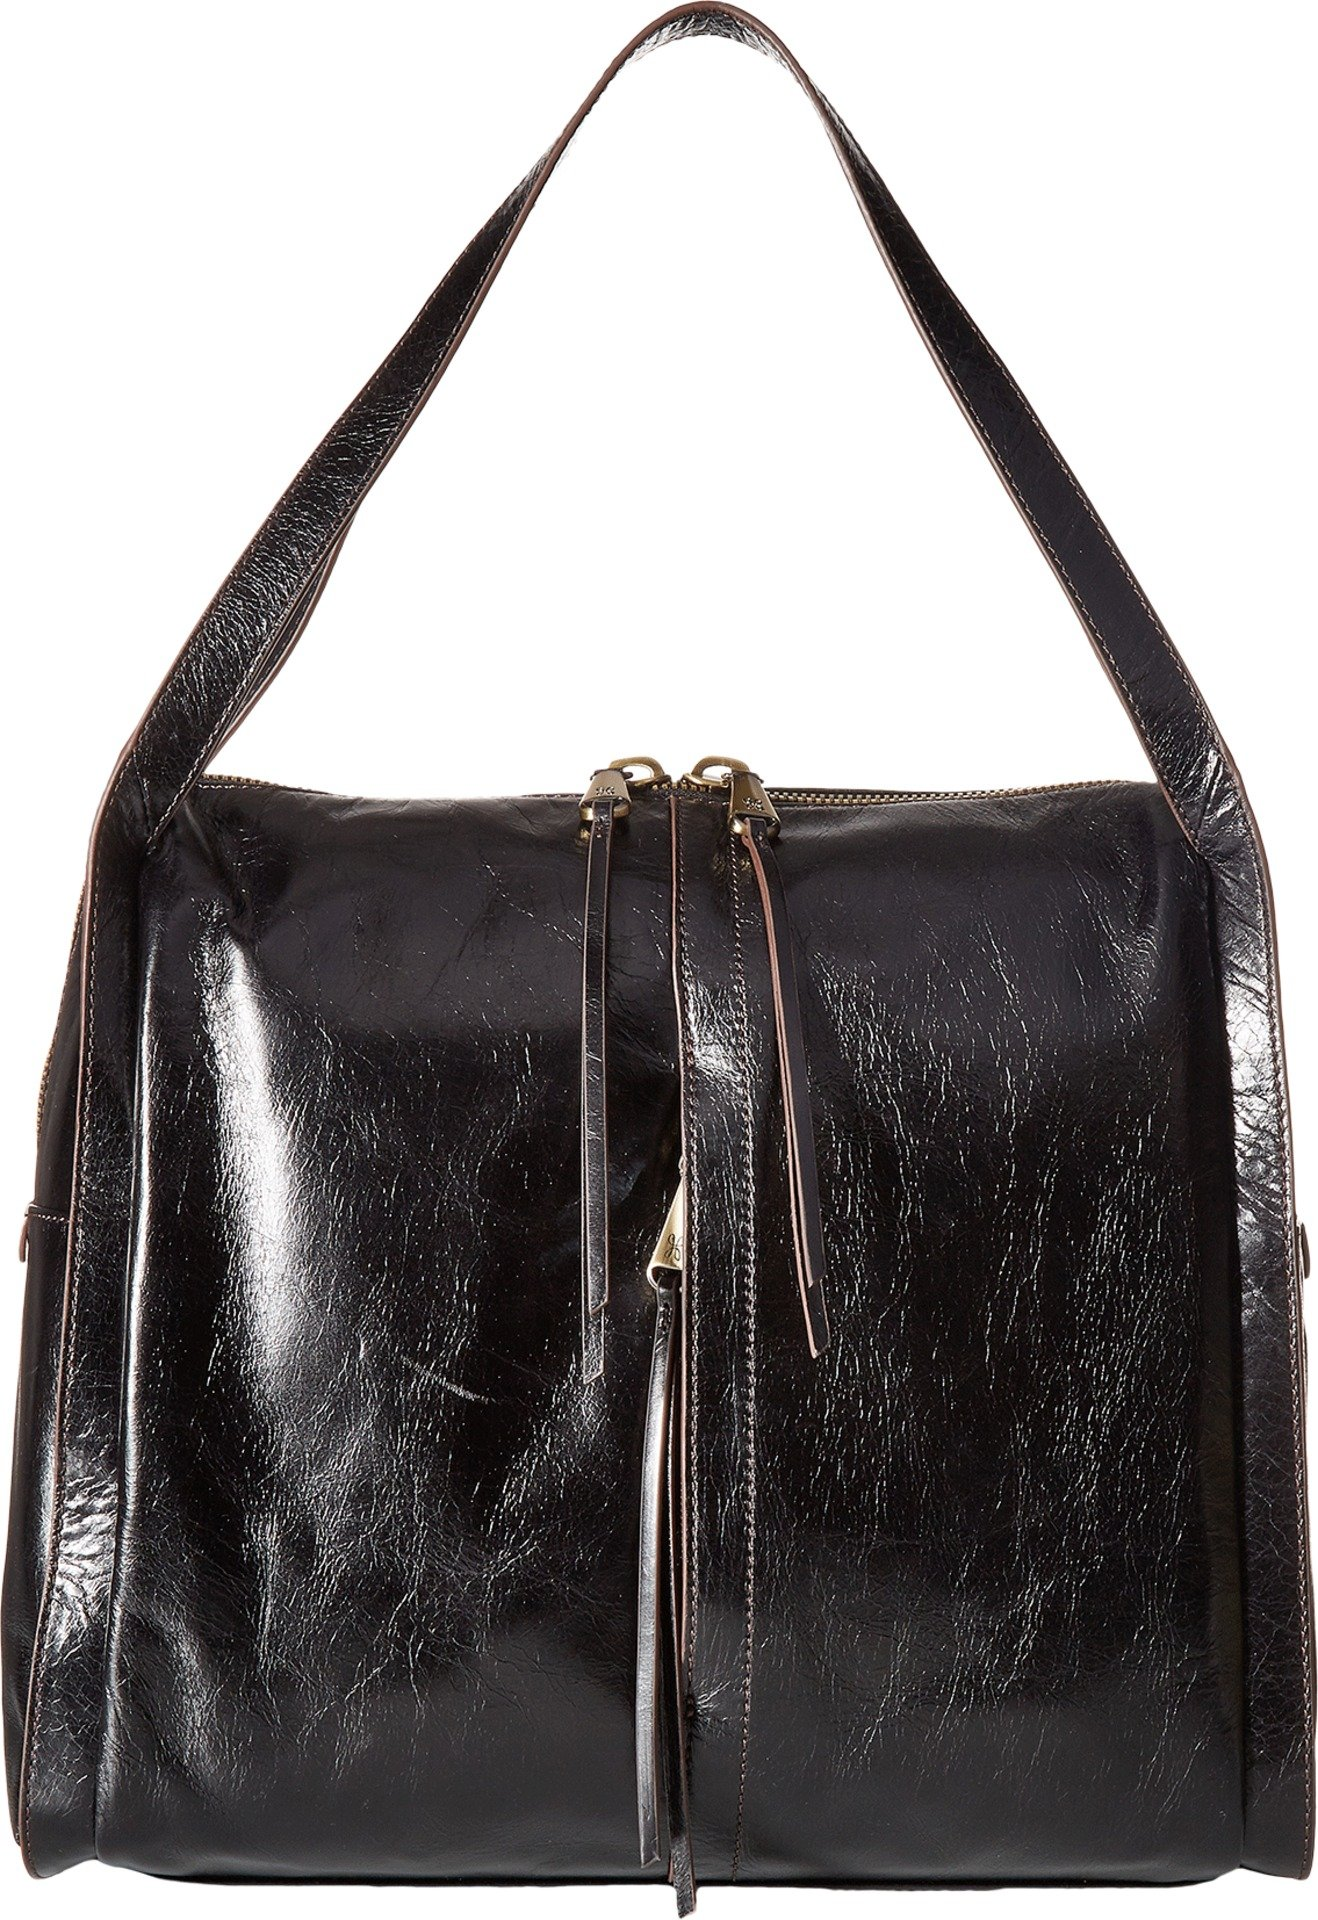 Hobo Women's Century Black Handbag